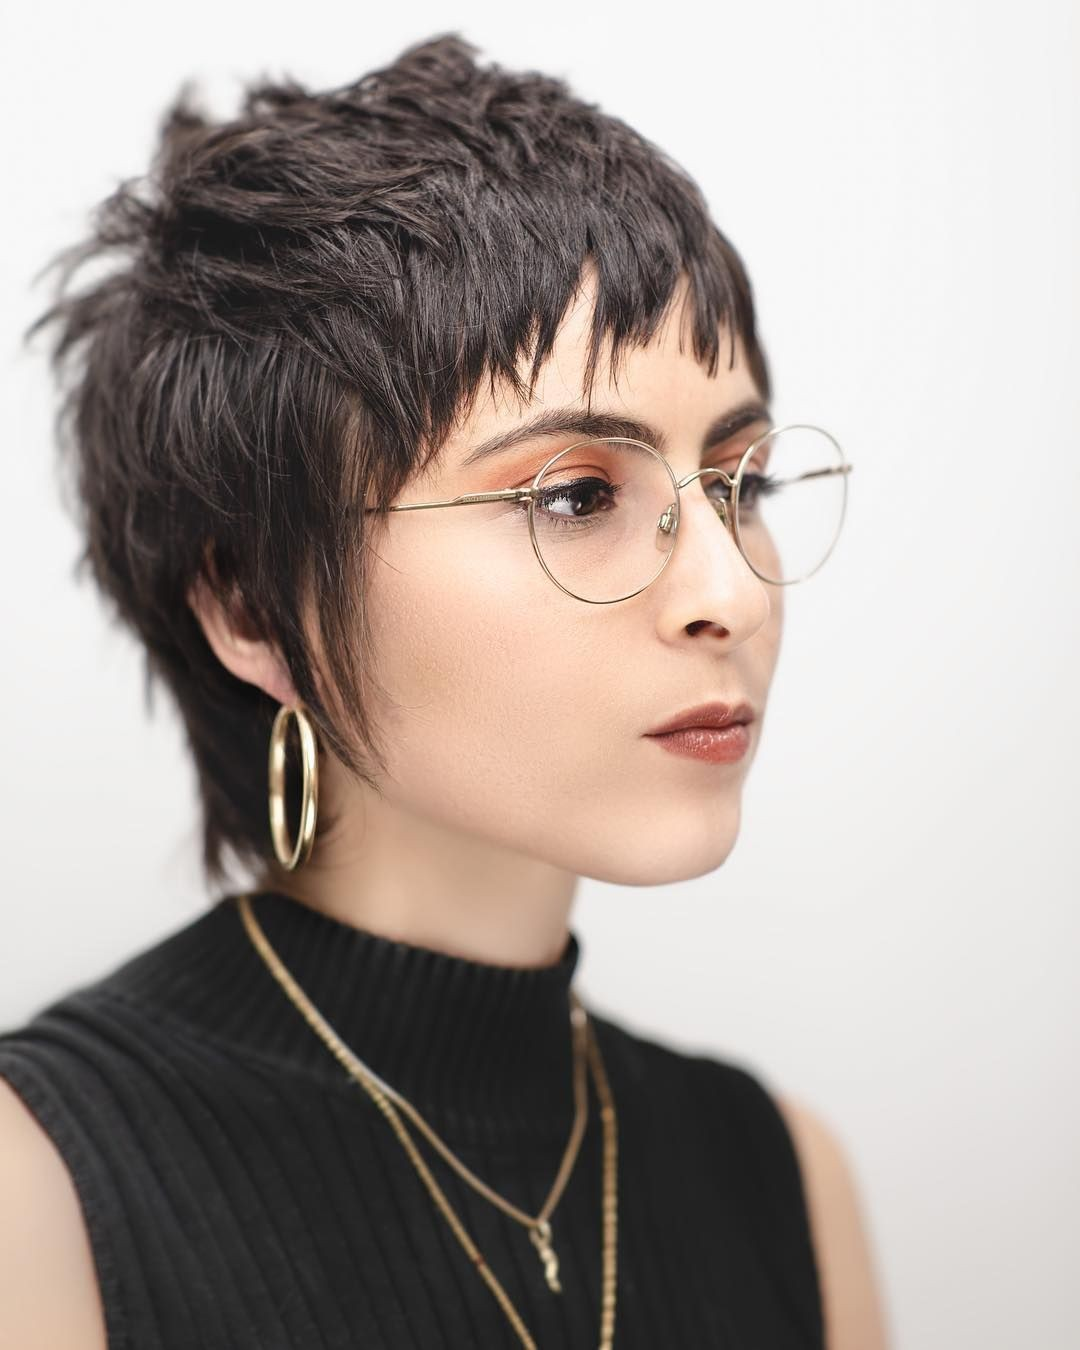 Neck-length Choppy Hairstyle